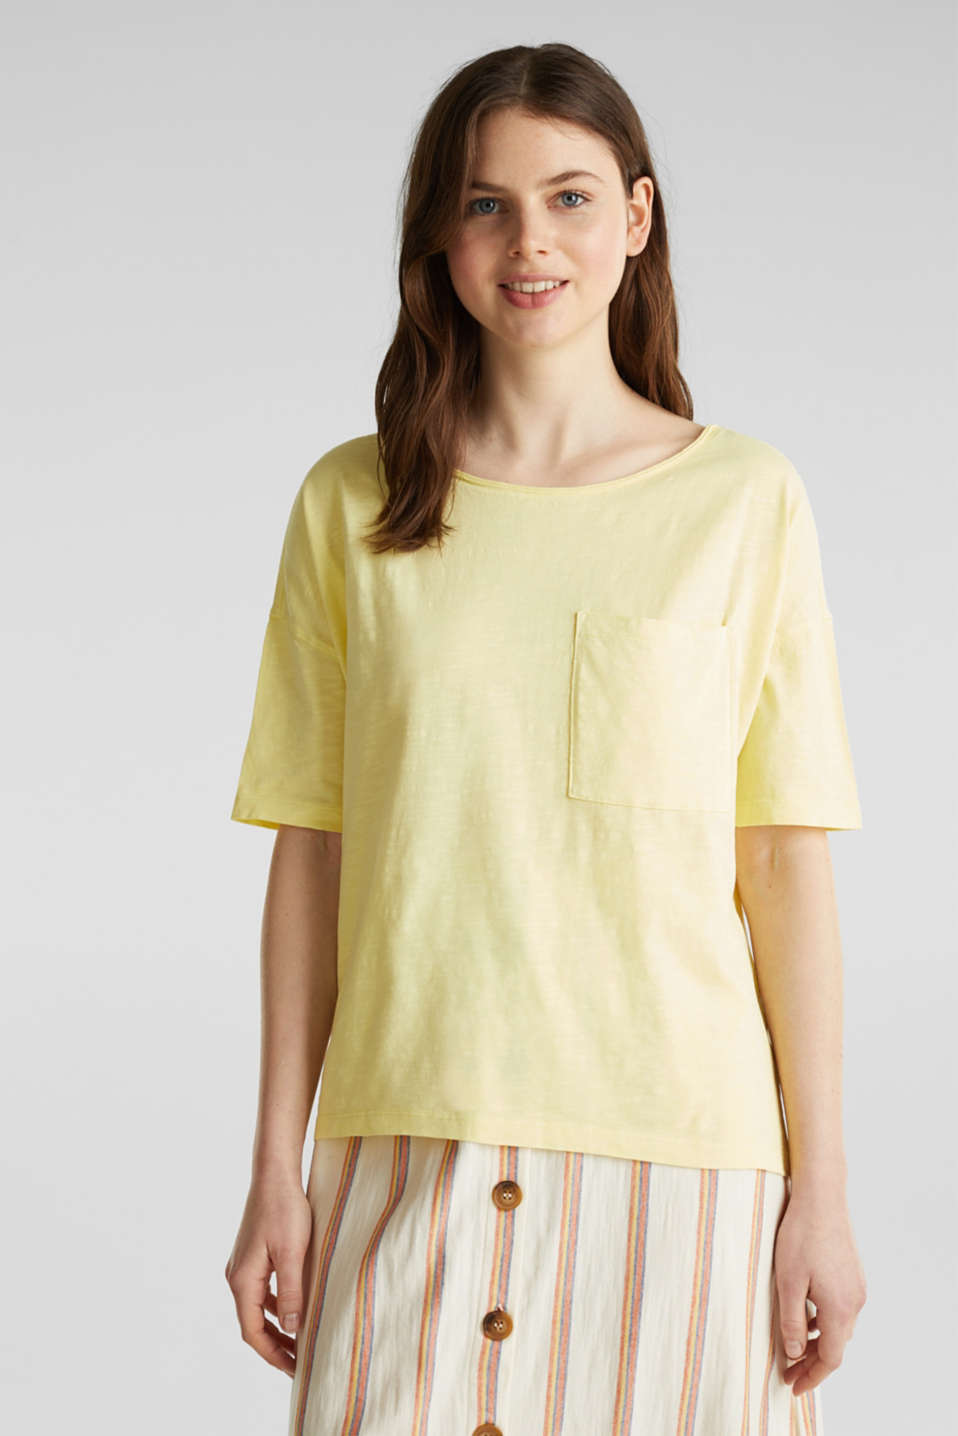 Esprit - Shirt met zak, 100% organic cotton